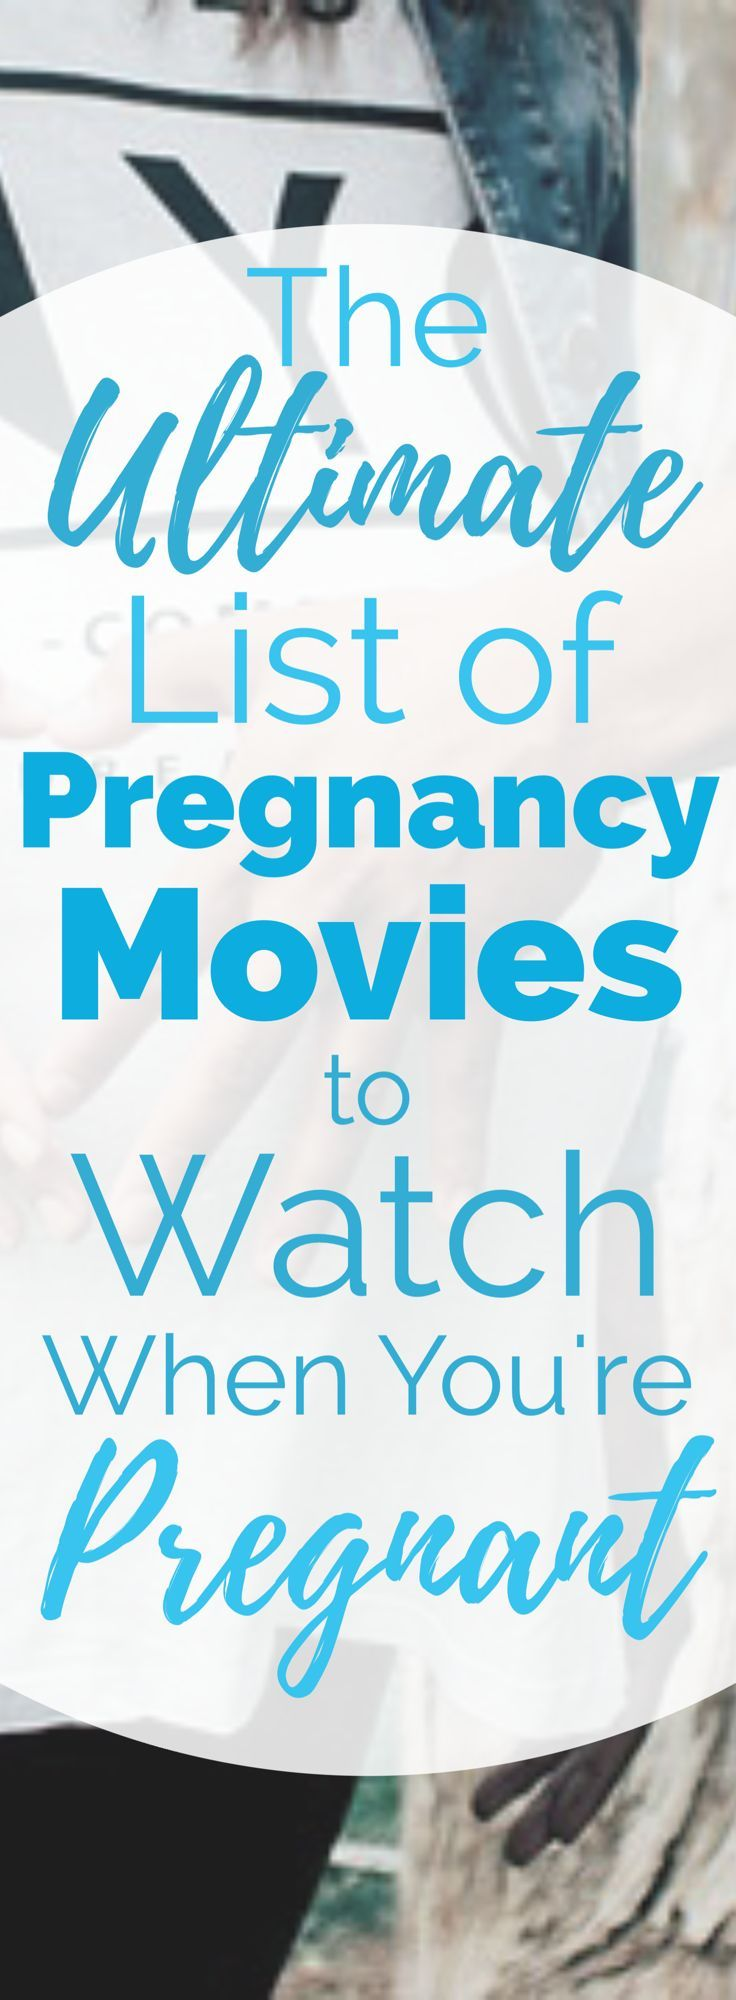 The BEST Pregnancy Movies to Watch When You're Pregnant | When you're tired and laying on the couch or in bed during pregnancy, watch one of these amazing movies about pregnancy! A great list to keep on-hand for a pregnancy movie night in.